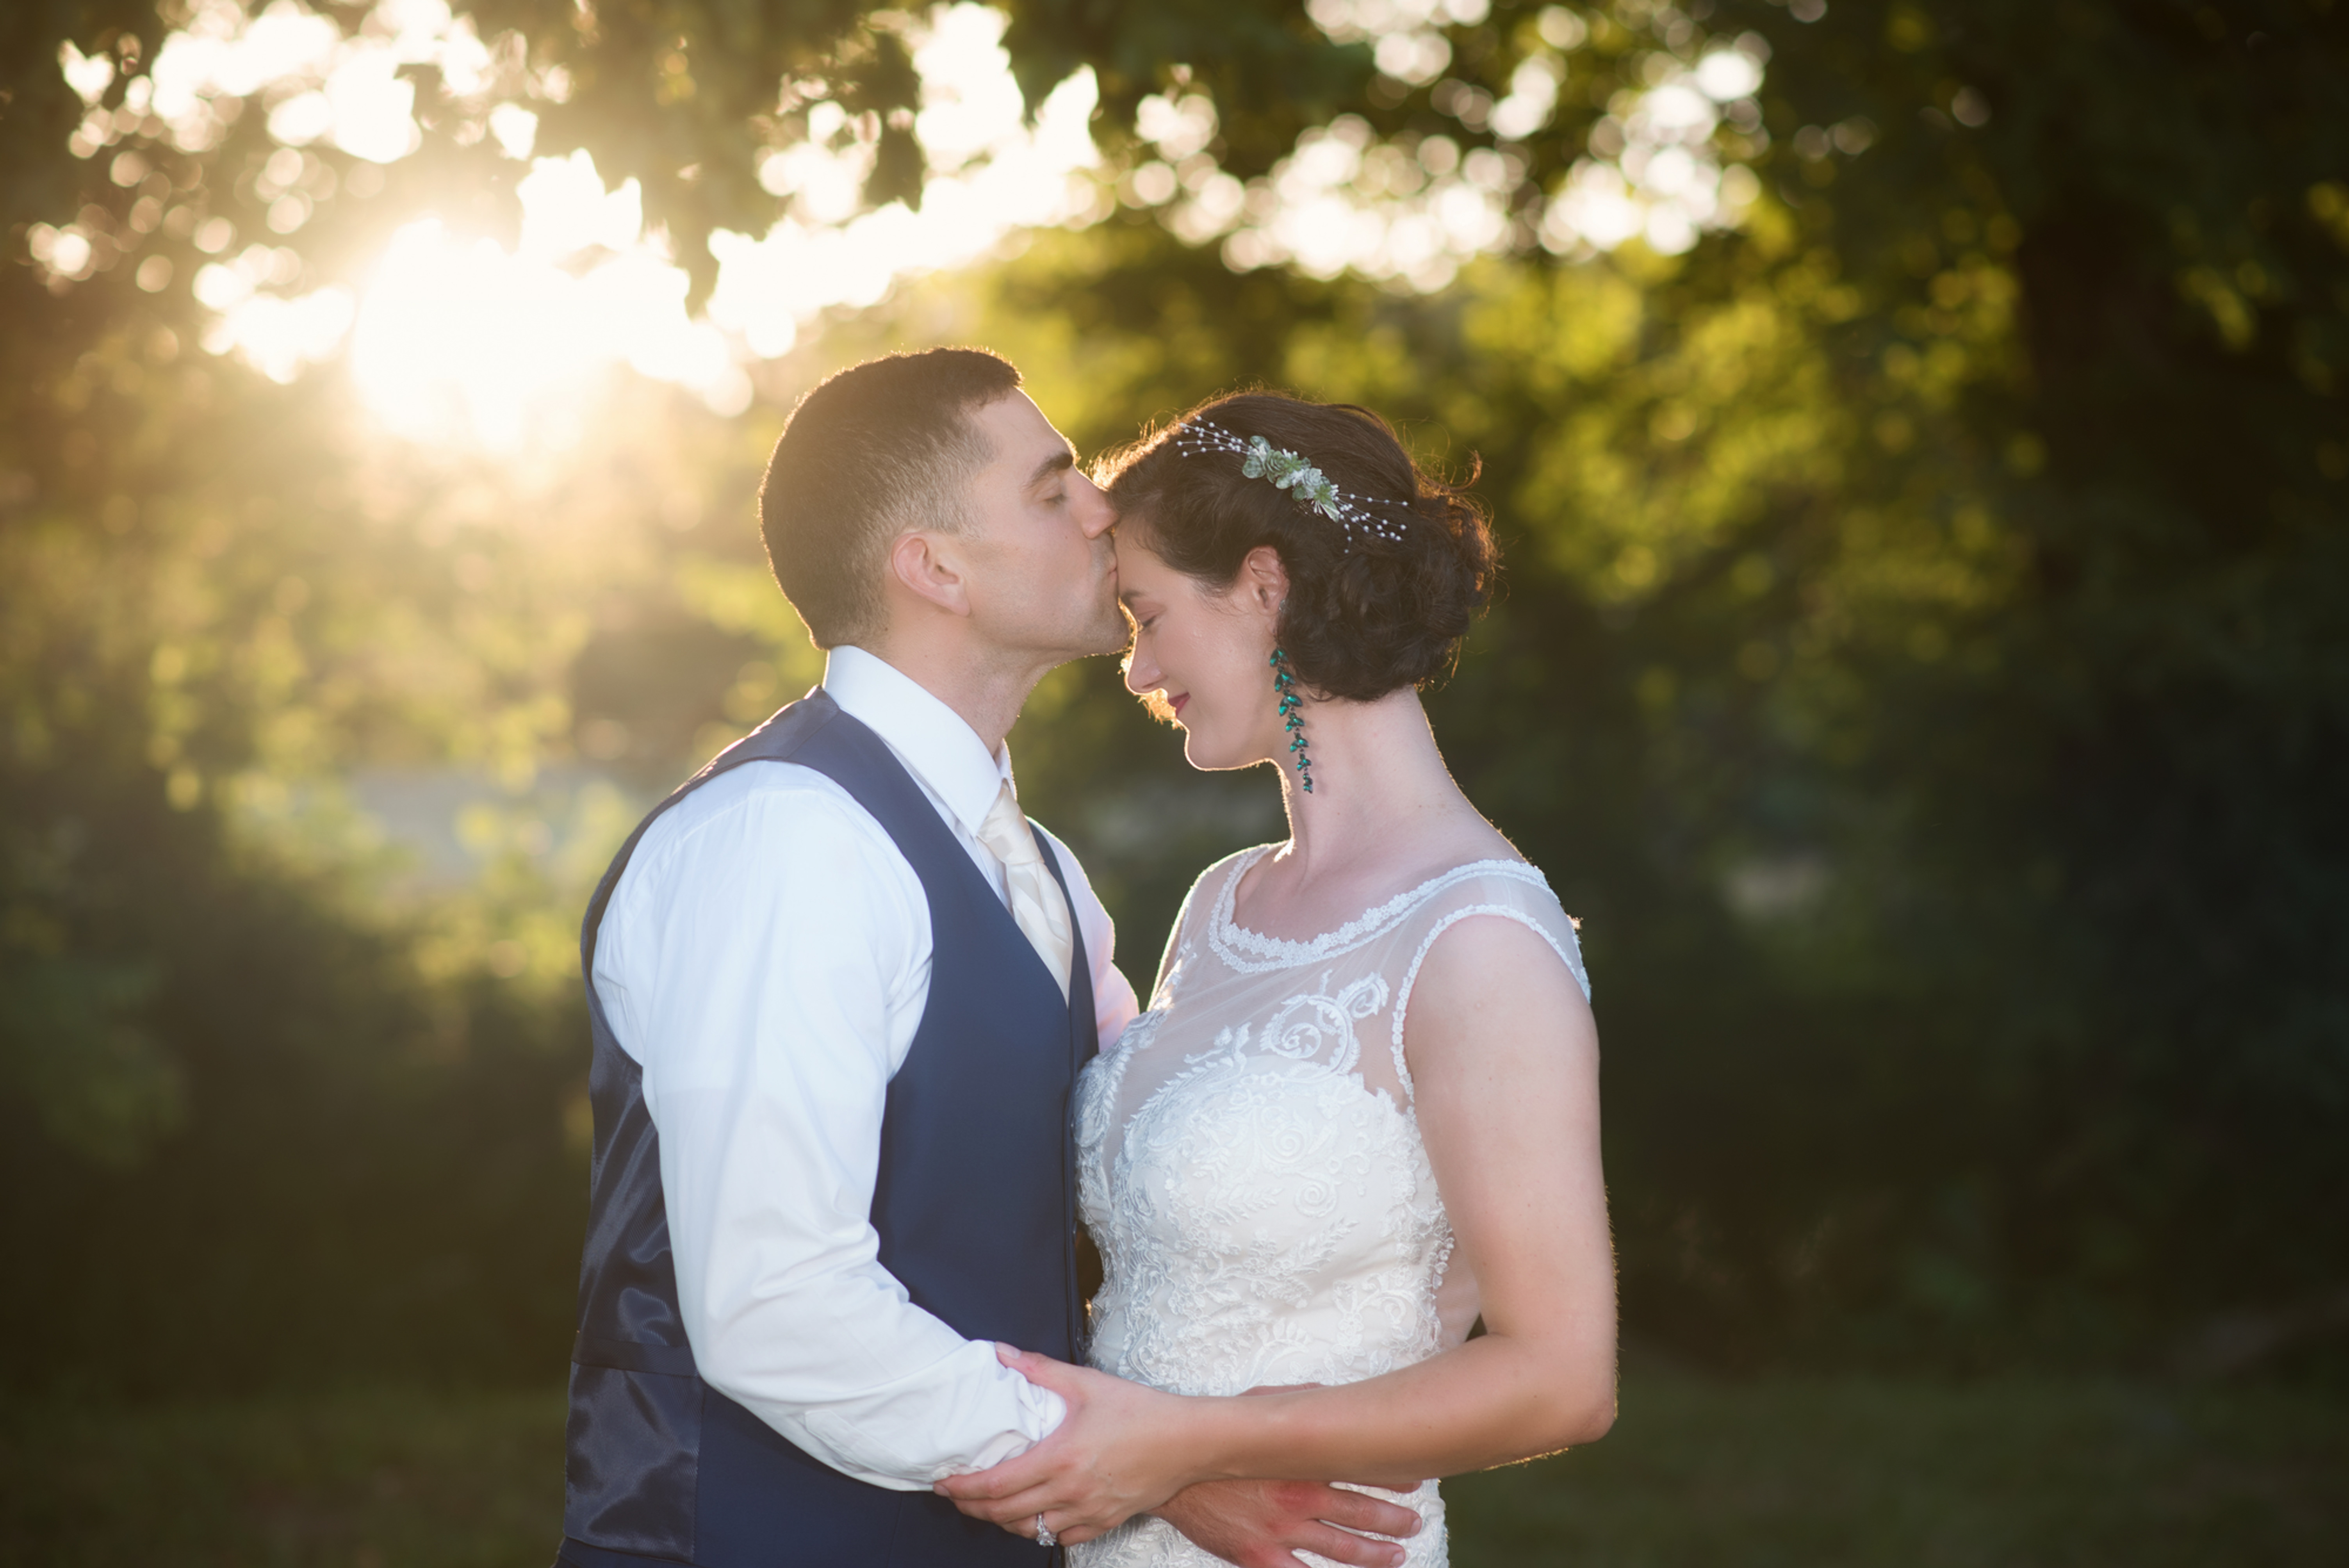 Wedding Photography Package 4